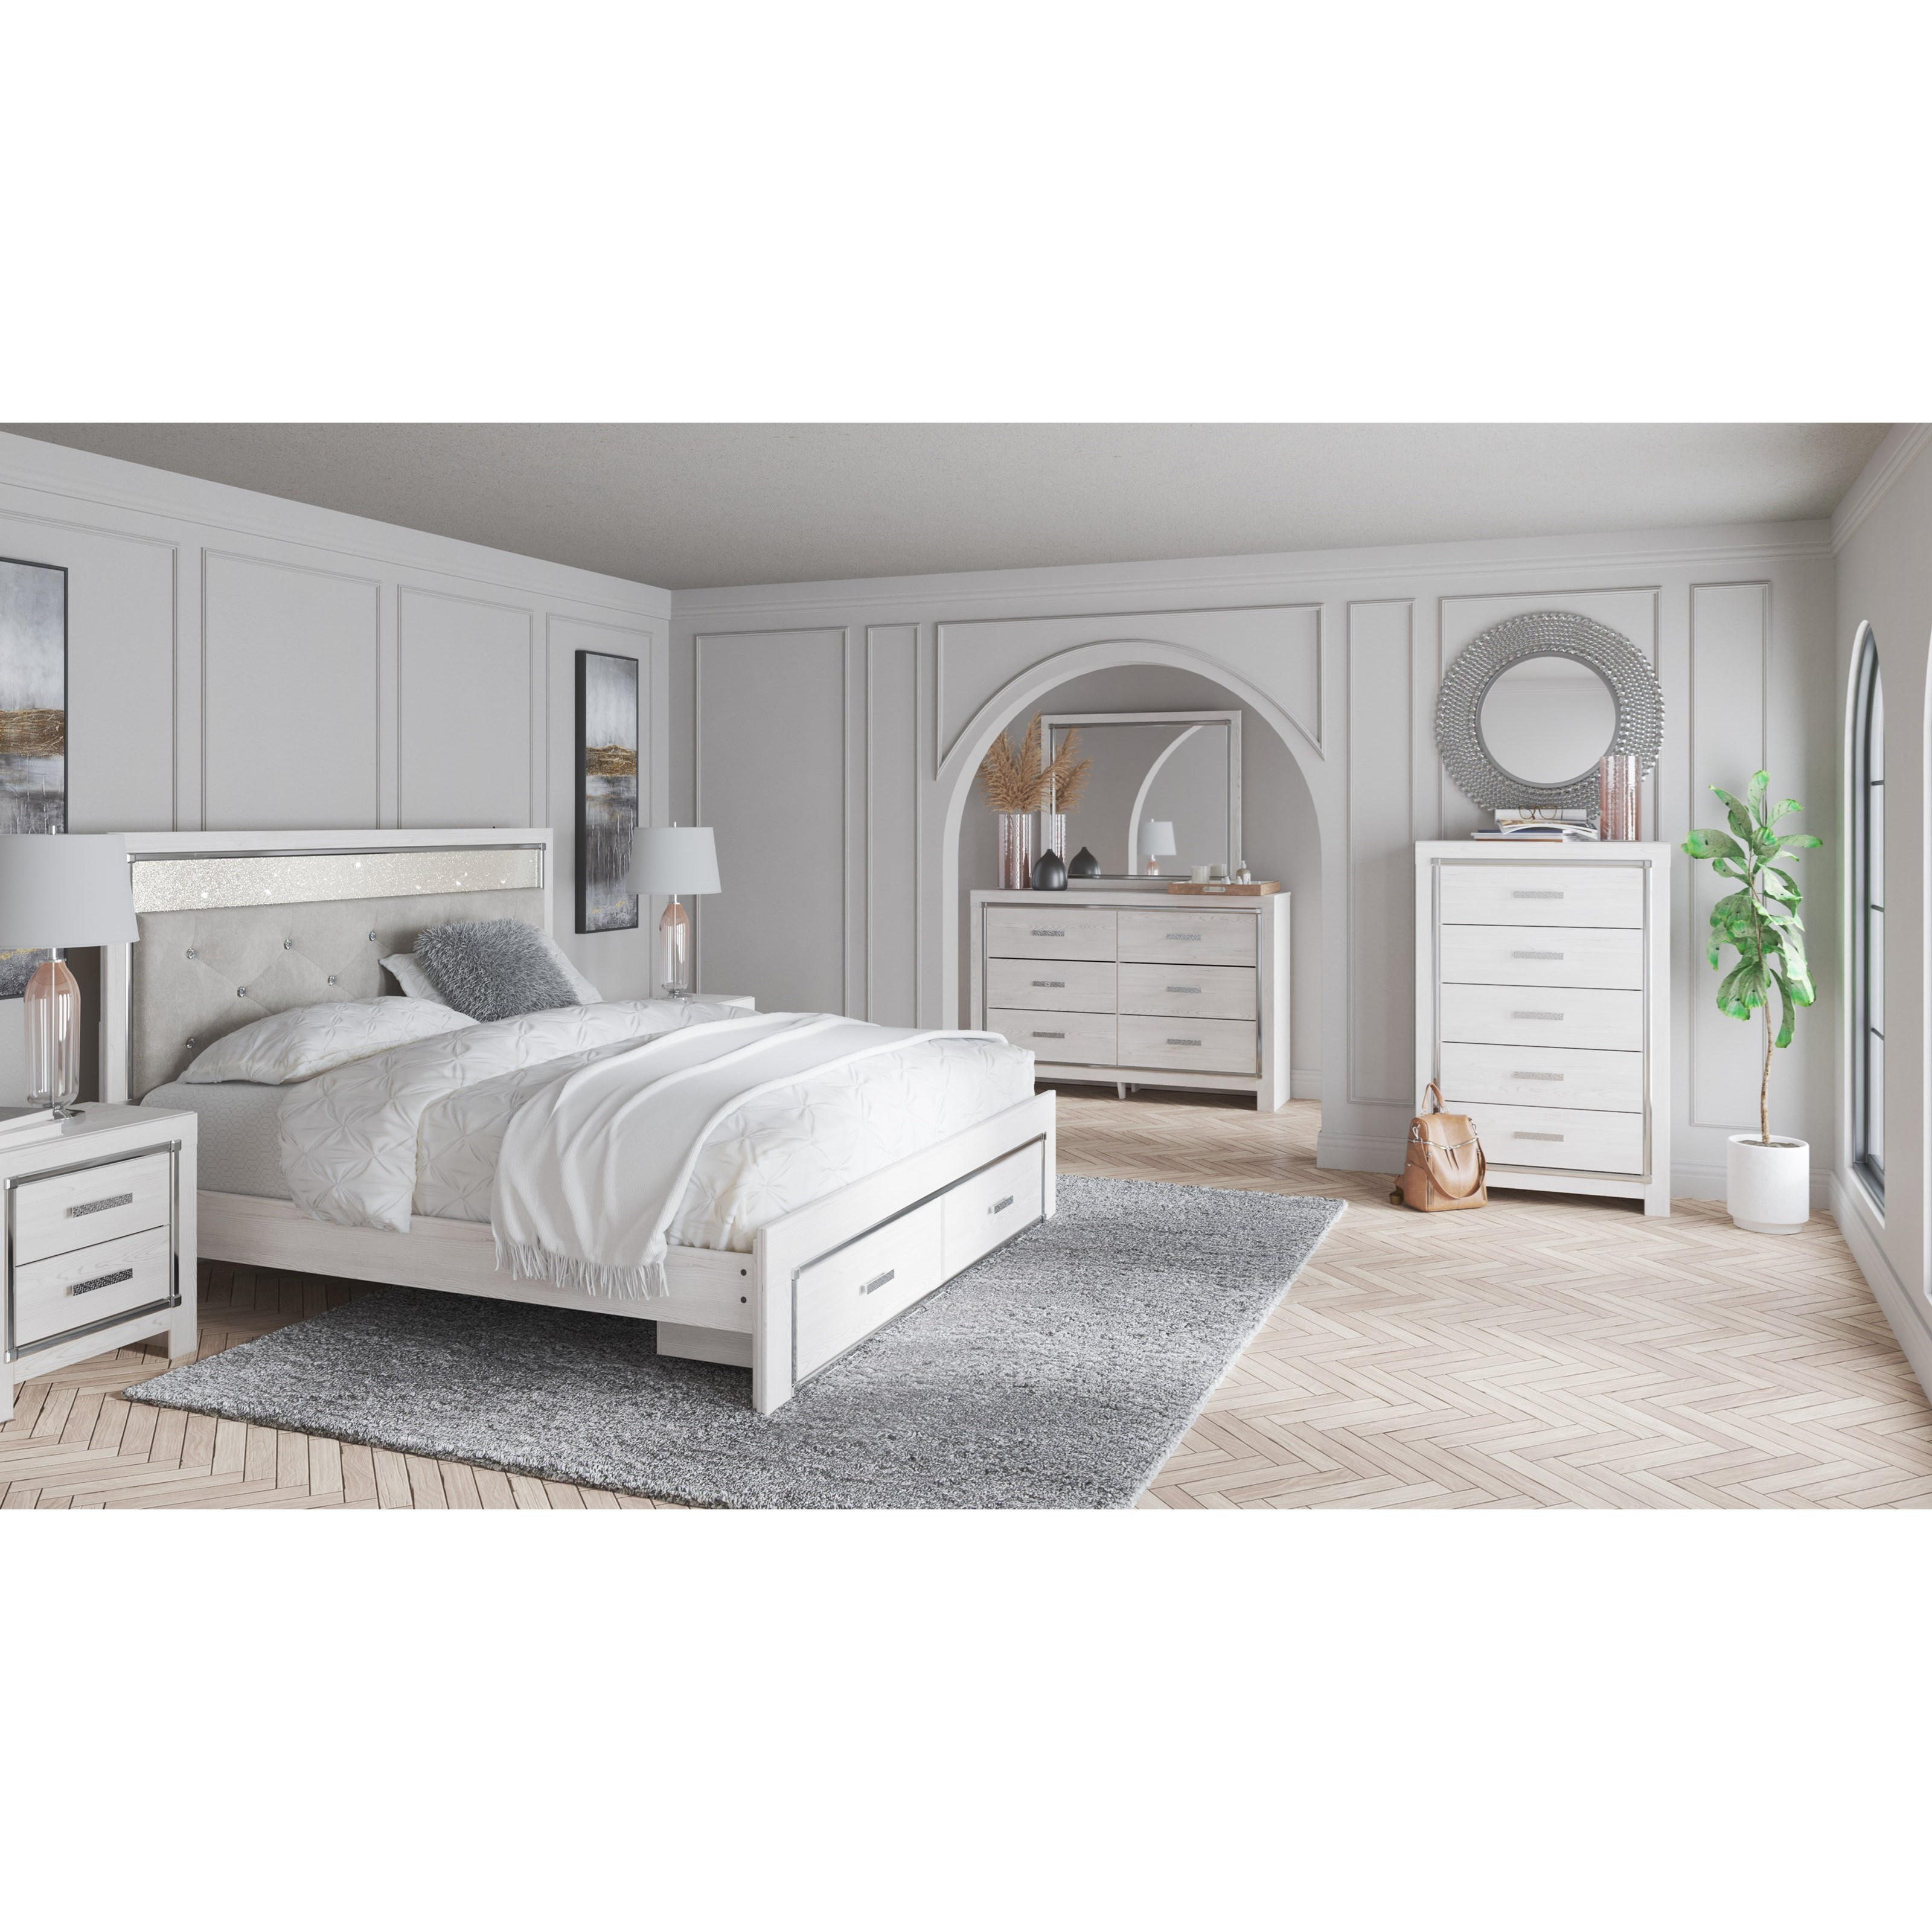 Altyra King Bedroom Group by Signature Design by Ashley at Standard Furniture